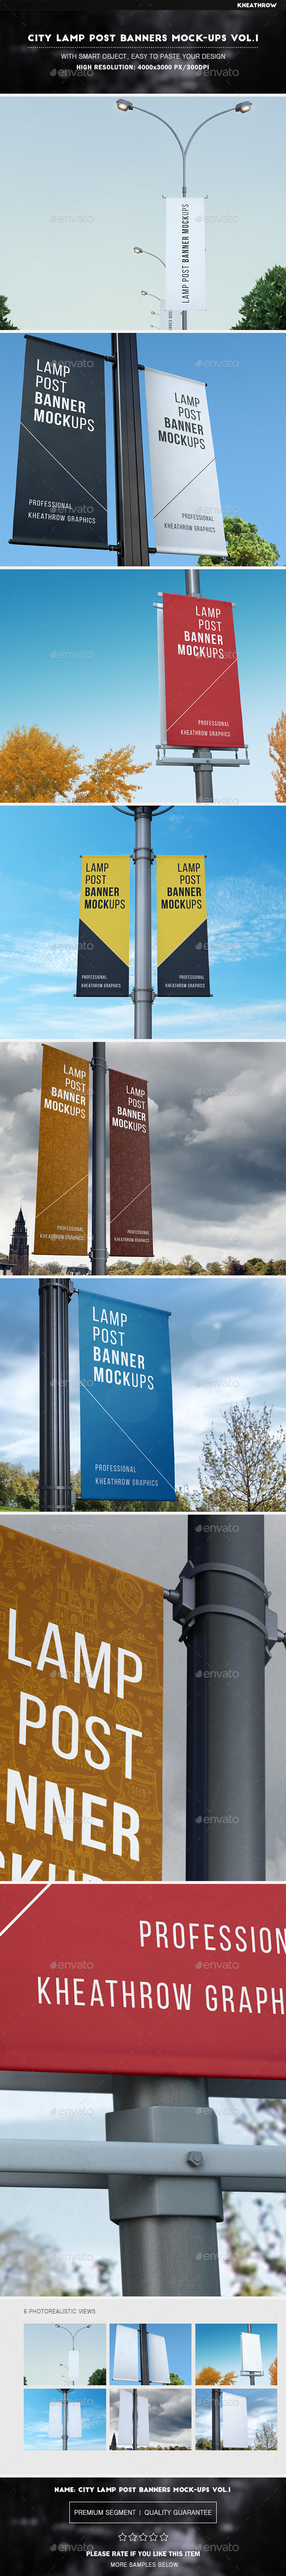 City Lamp Post Banners Mock-Ups Vol.1 - Product Mock-Ups Graphics